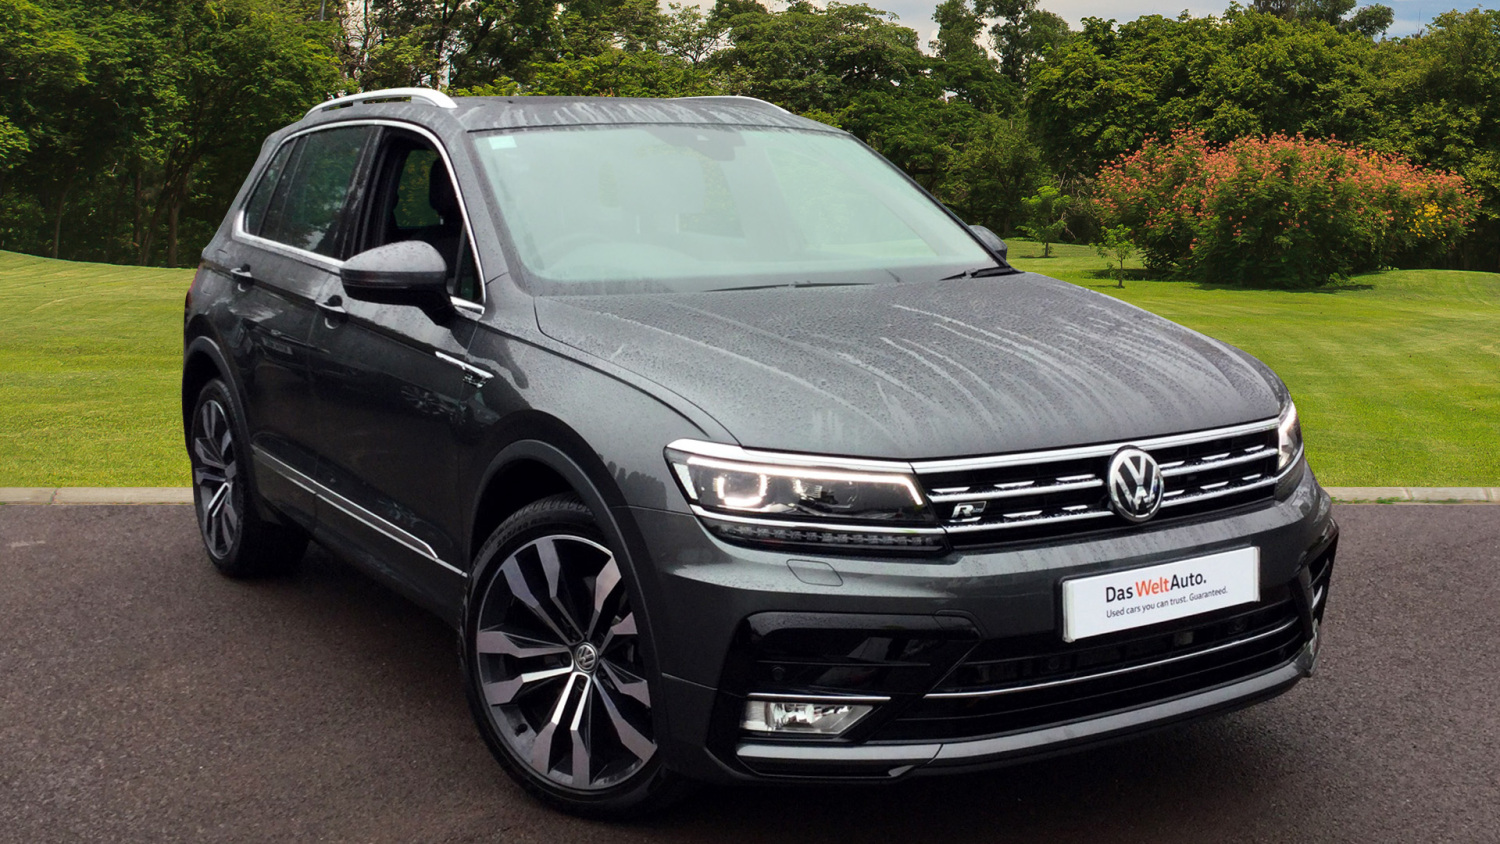 used volkswagen tiguan 2 0 tdi bmt 190 4motion r line 5dr dsg diesel estate for sale bristol. Black Bedroom Furniture Sets. Home Design Ideas